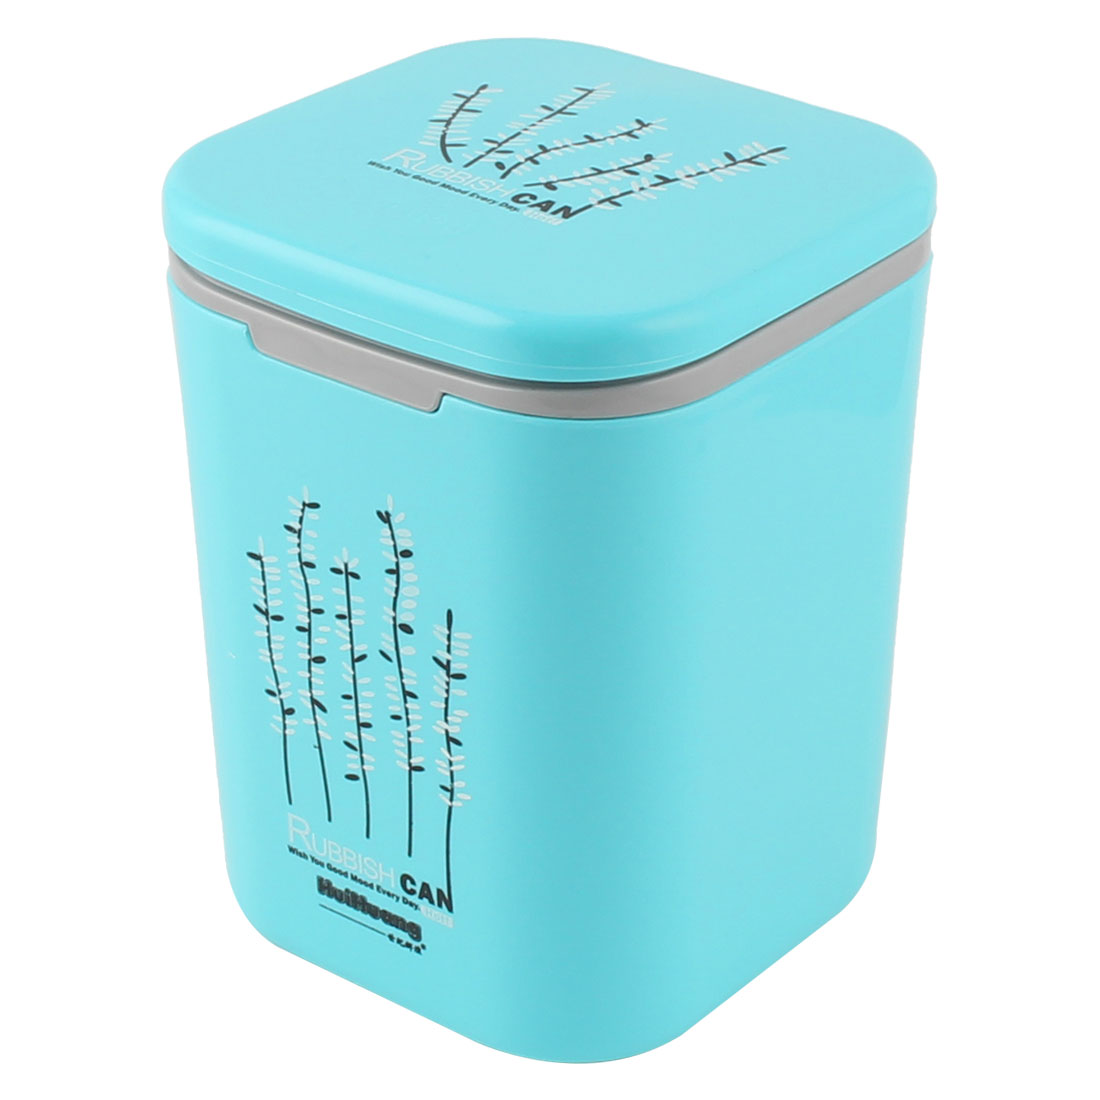 Push-button Desktop Storage Trash Rubbish Can Dustbin Waste Container 13 x 13 x 17.5cm Sky Blue